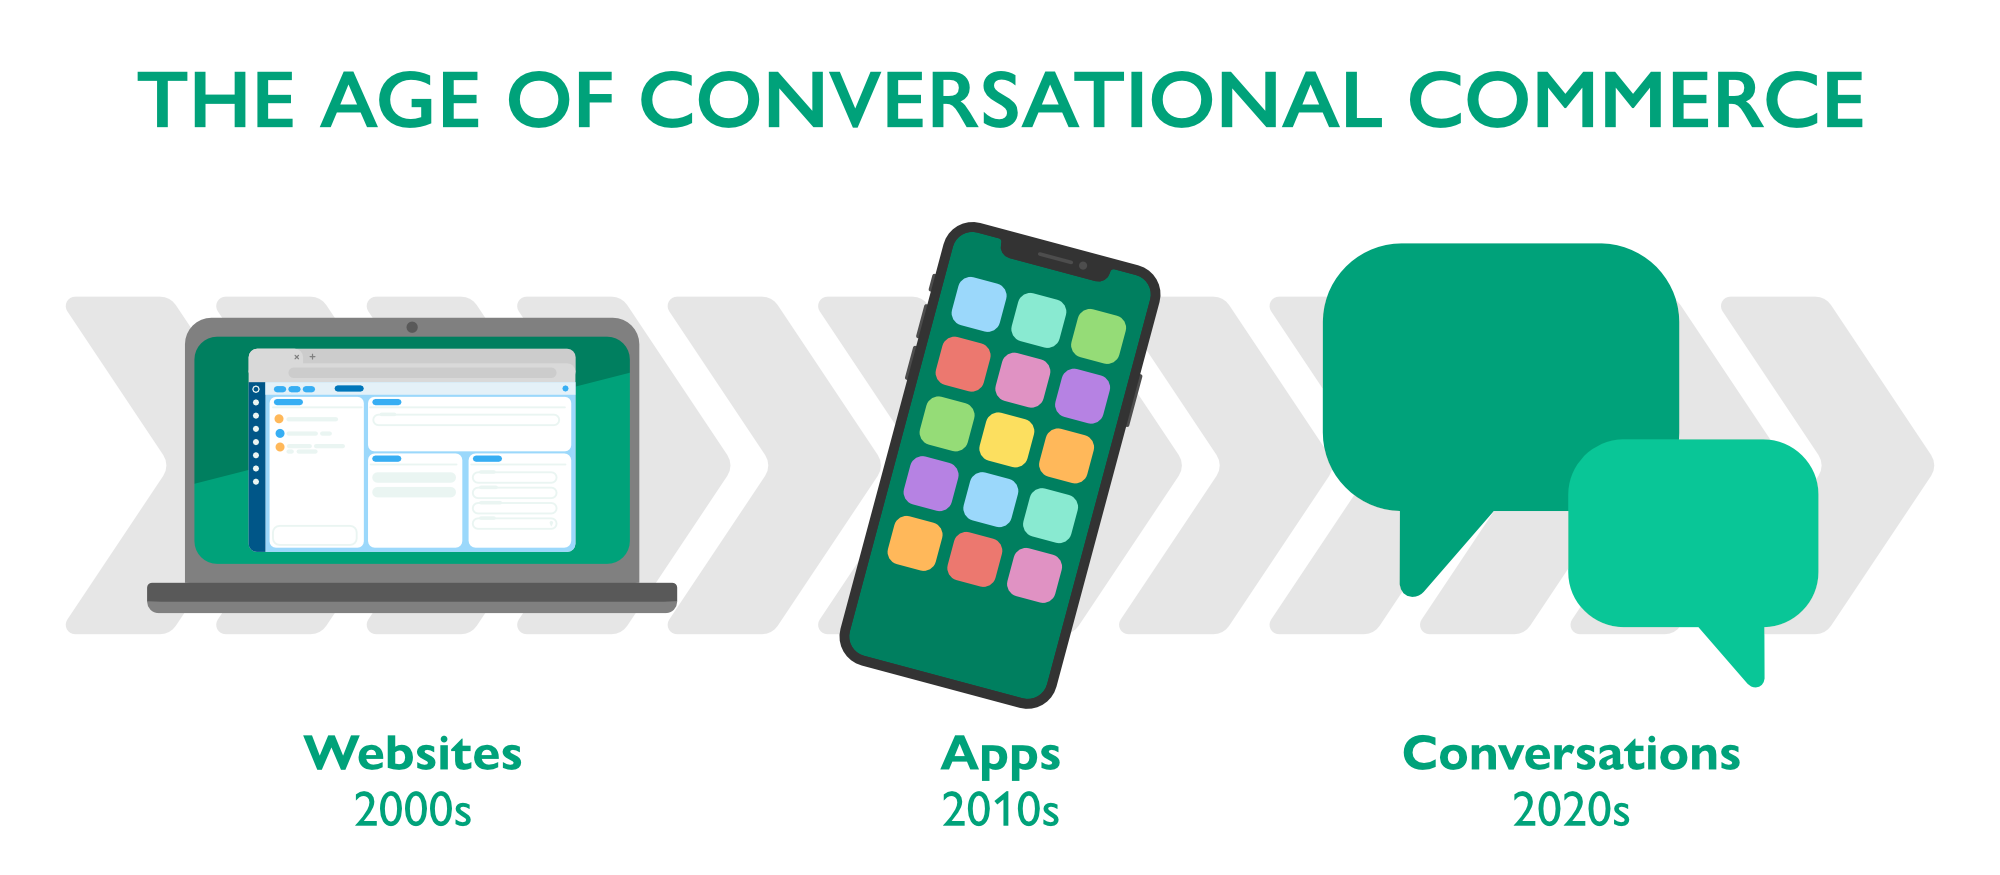 The Age of Conversational Commerce